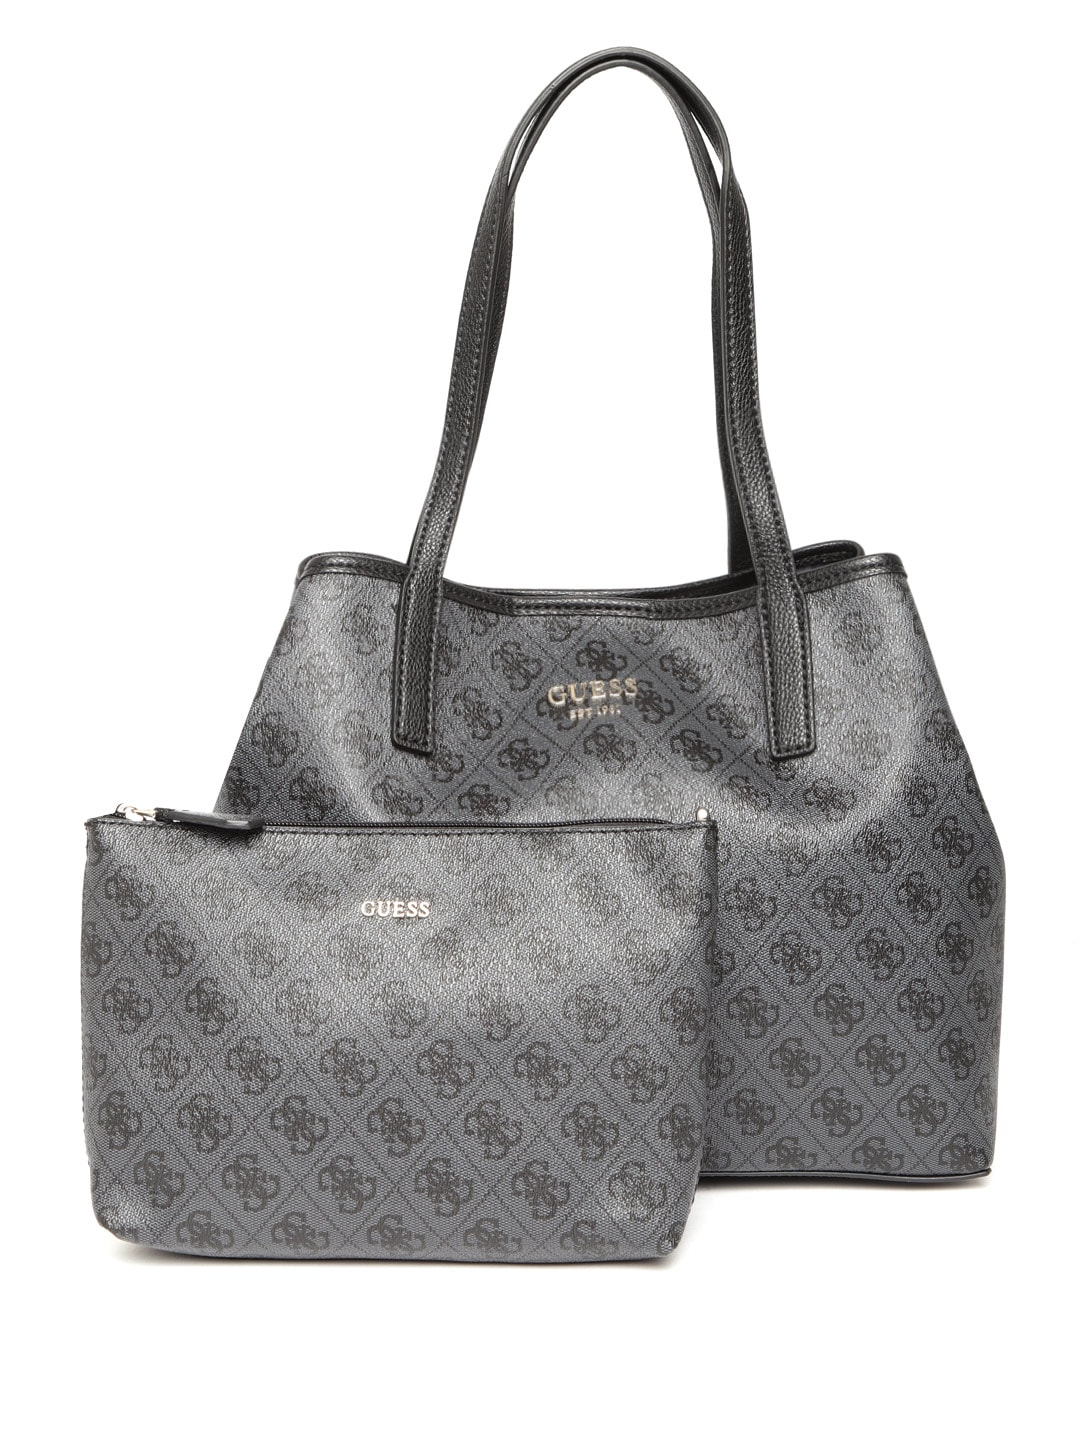 2094d81c7e88 Bags Online - Buy Bags for men and Women Online in India